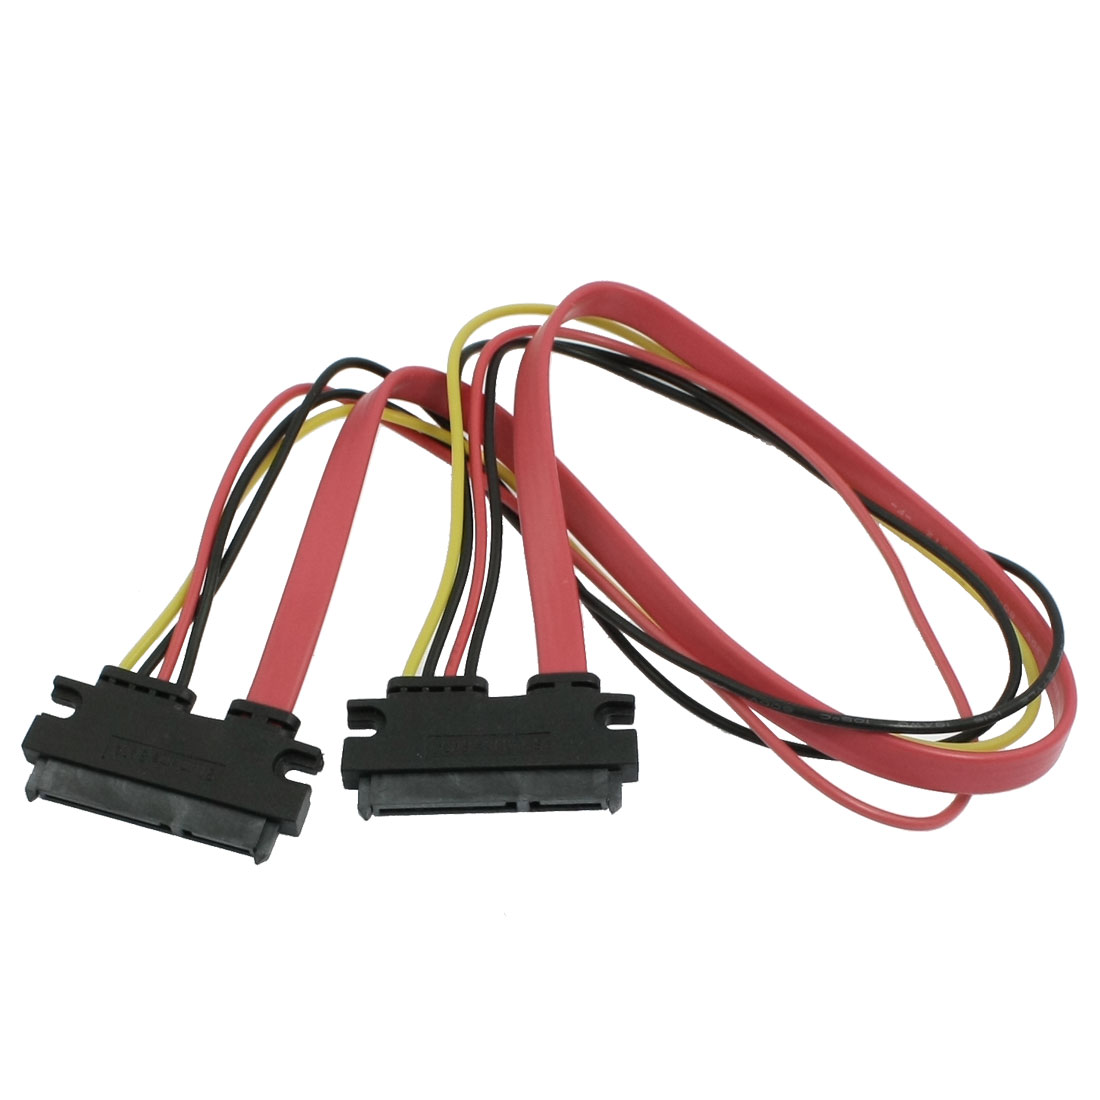 Computer PC 20cm Length 7+15 SATA Female to Female Power Cable Adapter